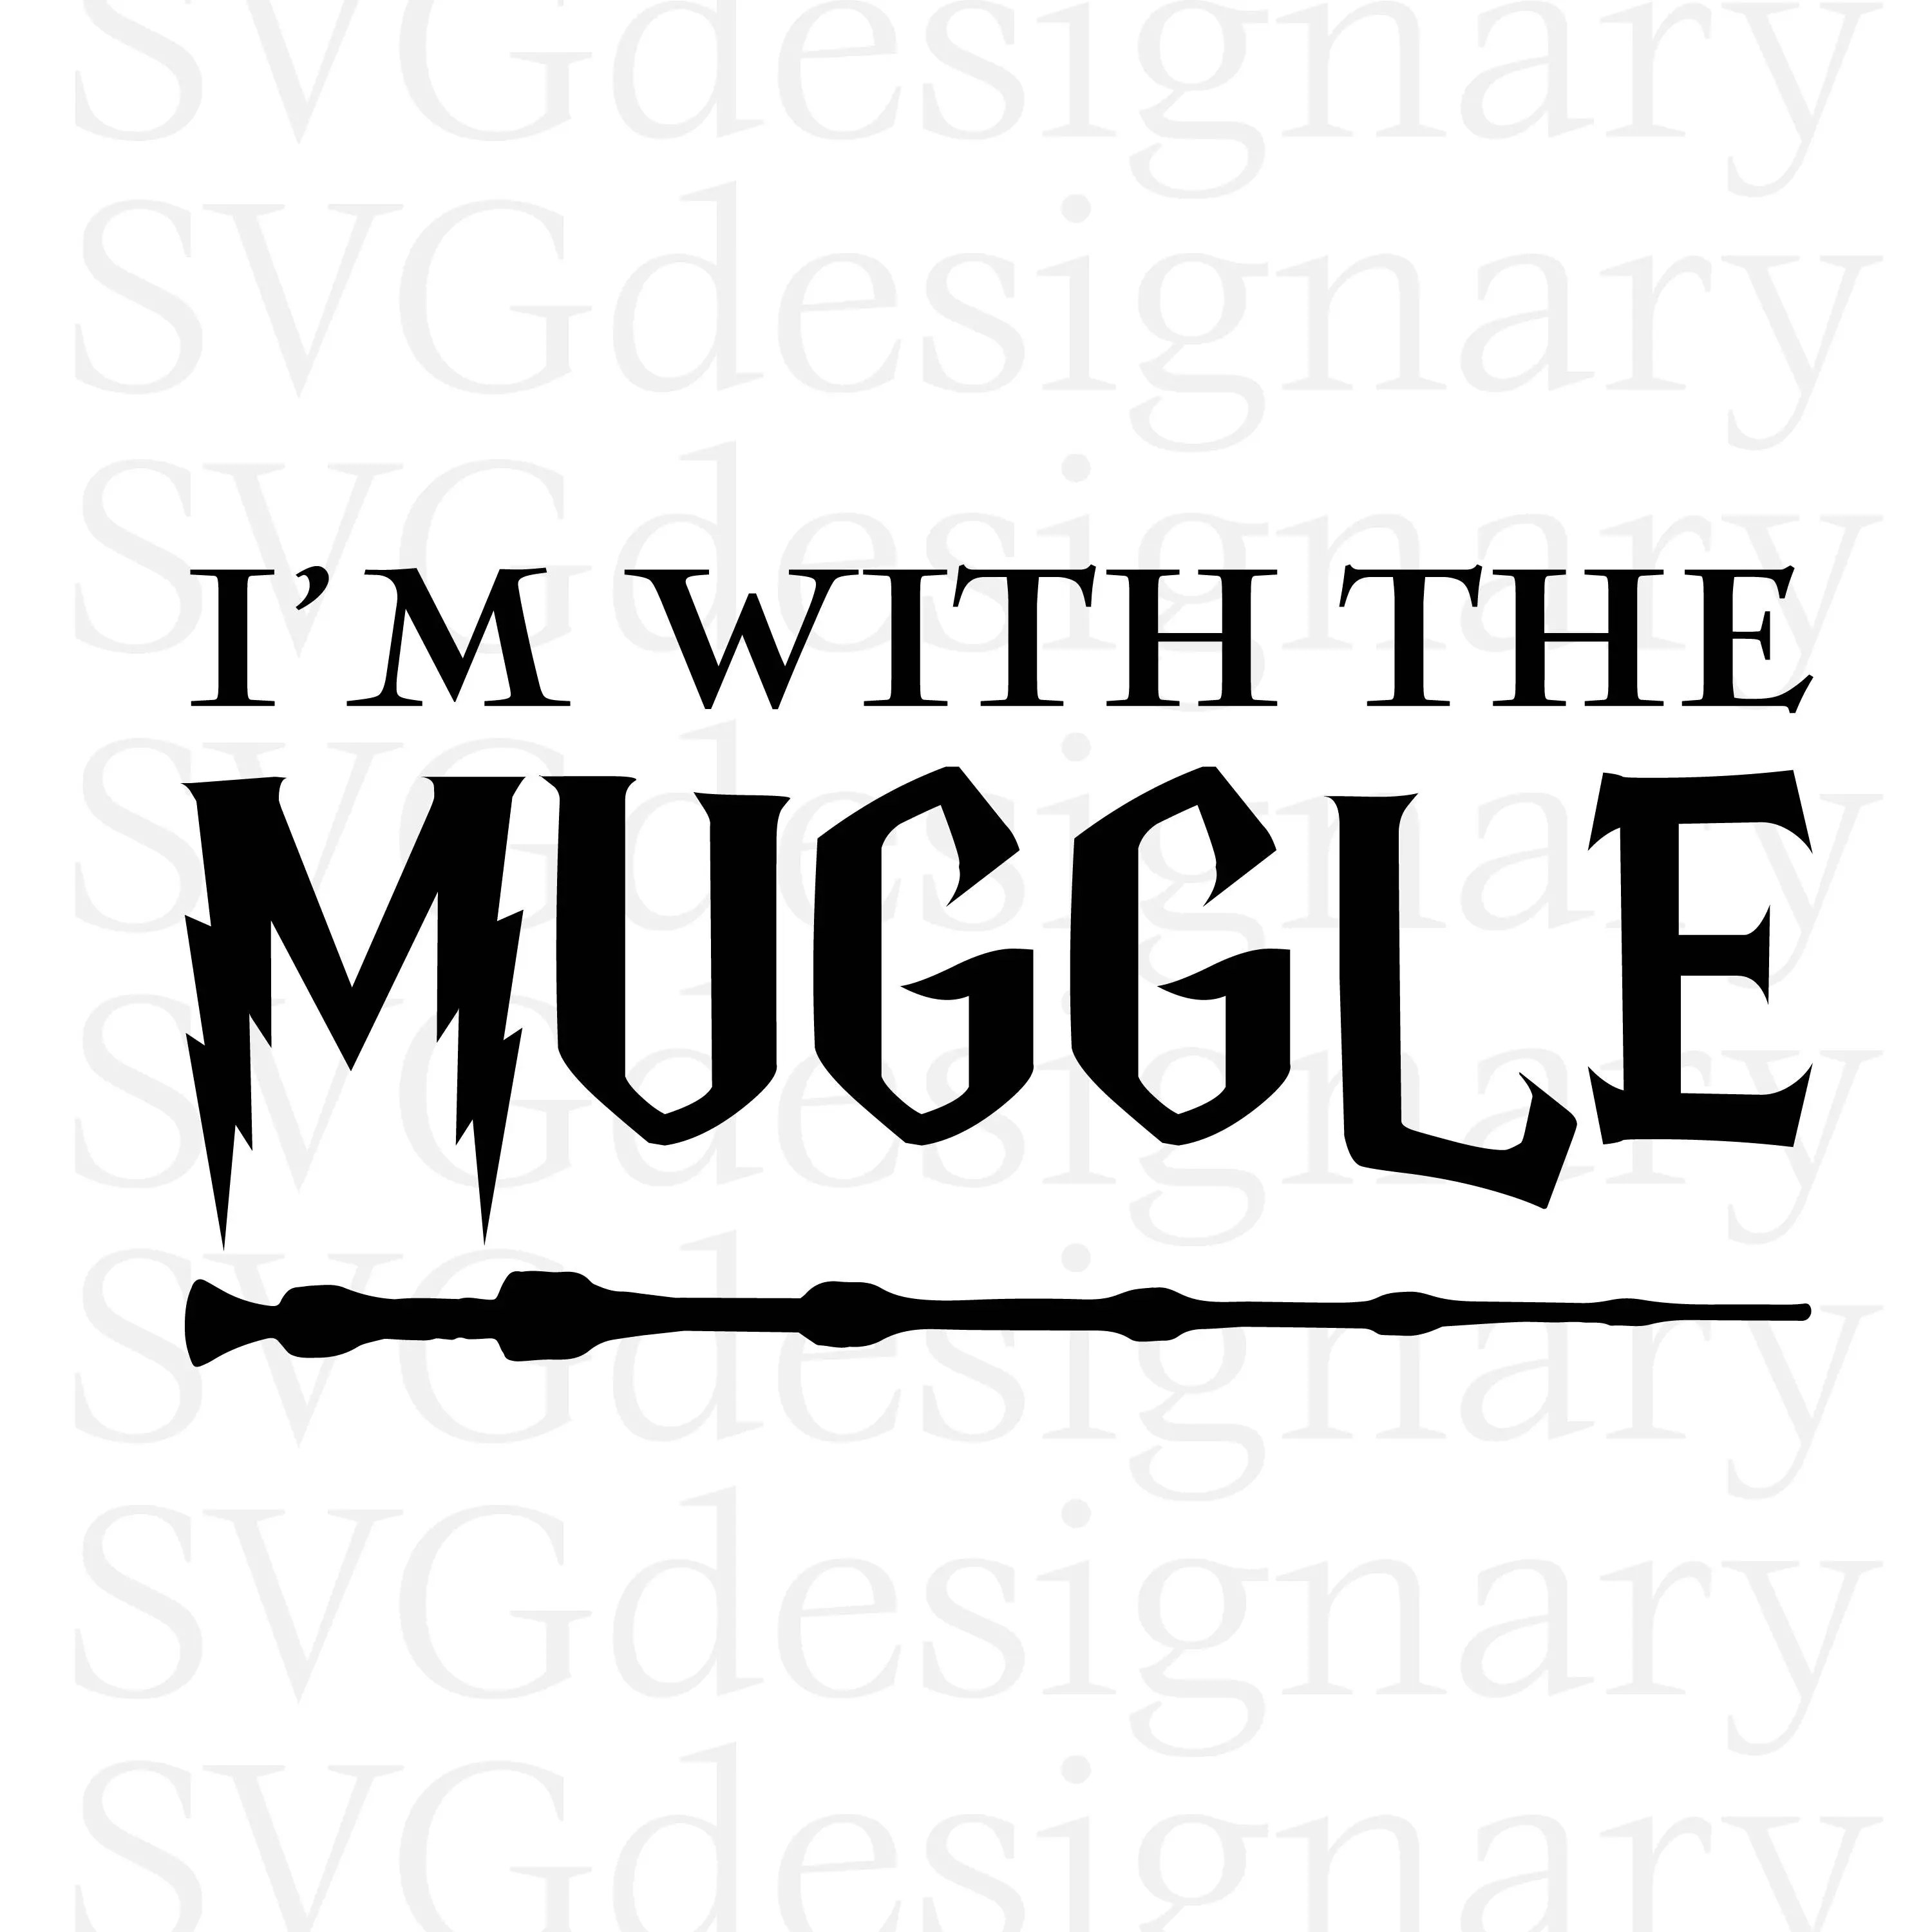 I M With The Muggle Harry Potter Series Elder Wand